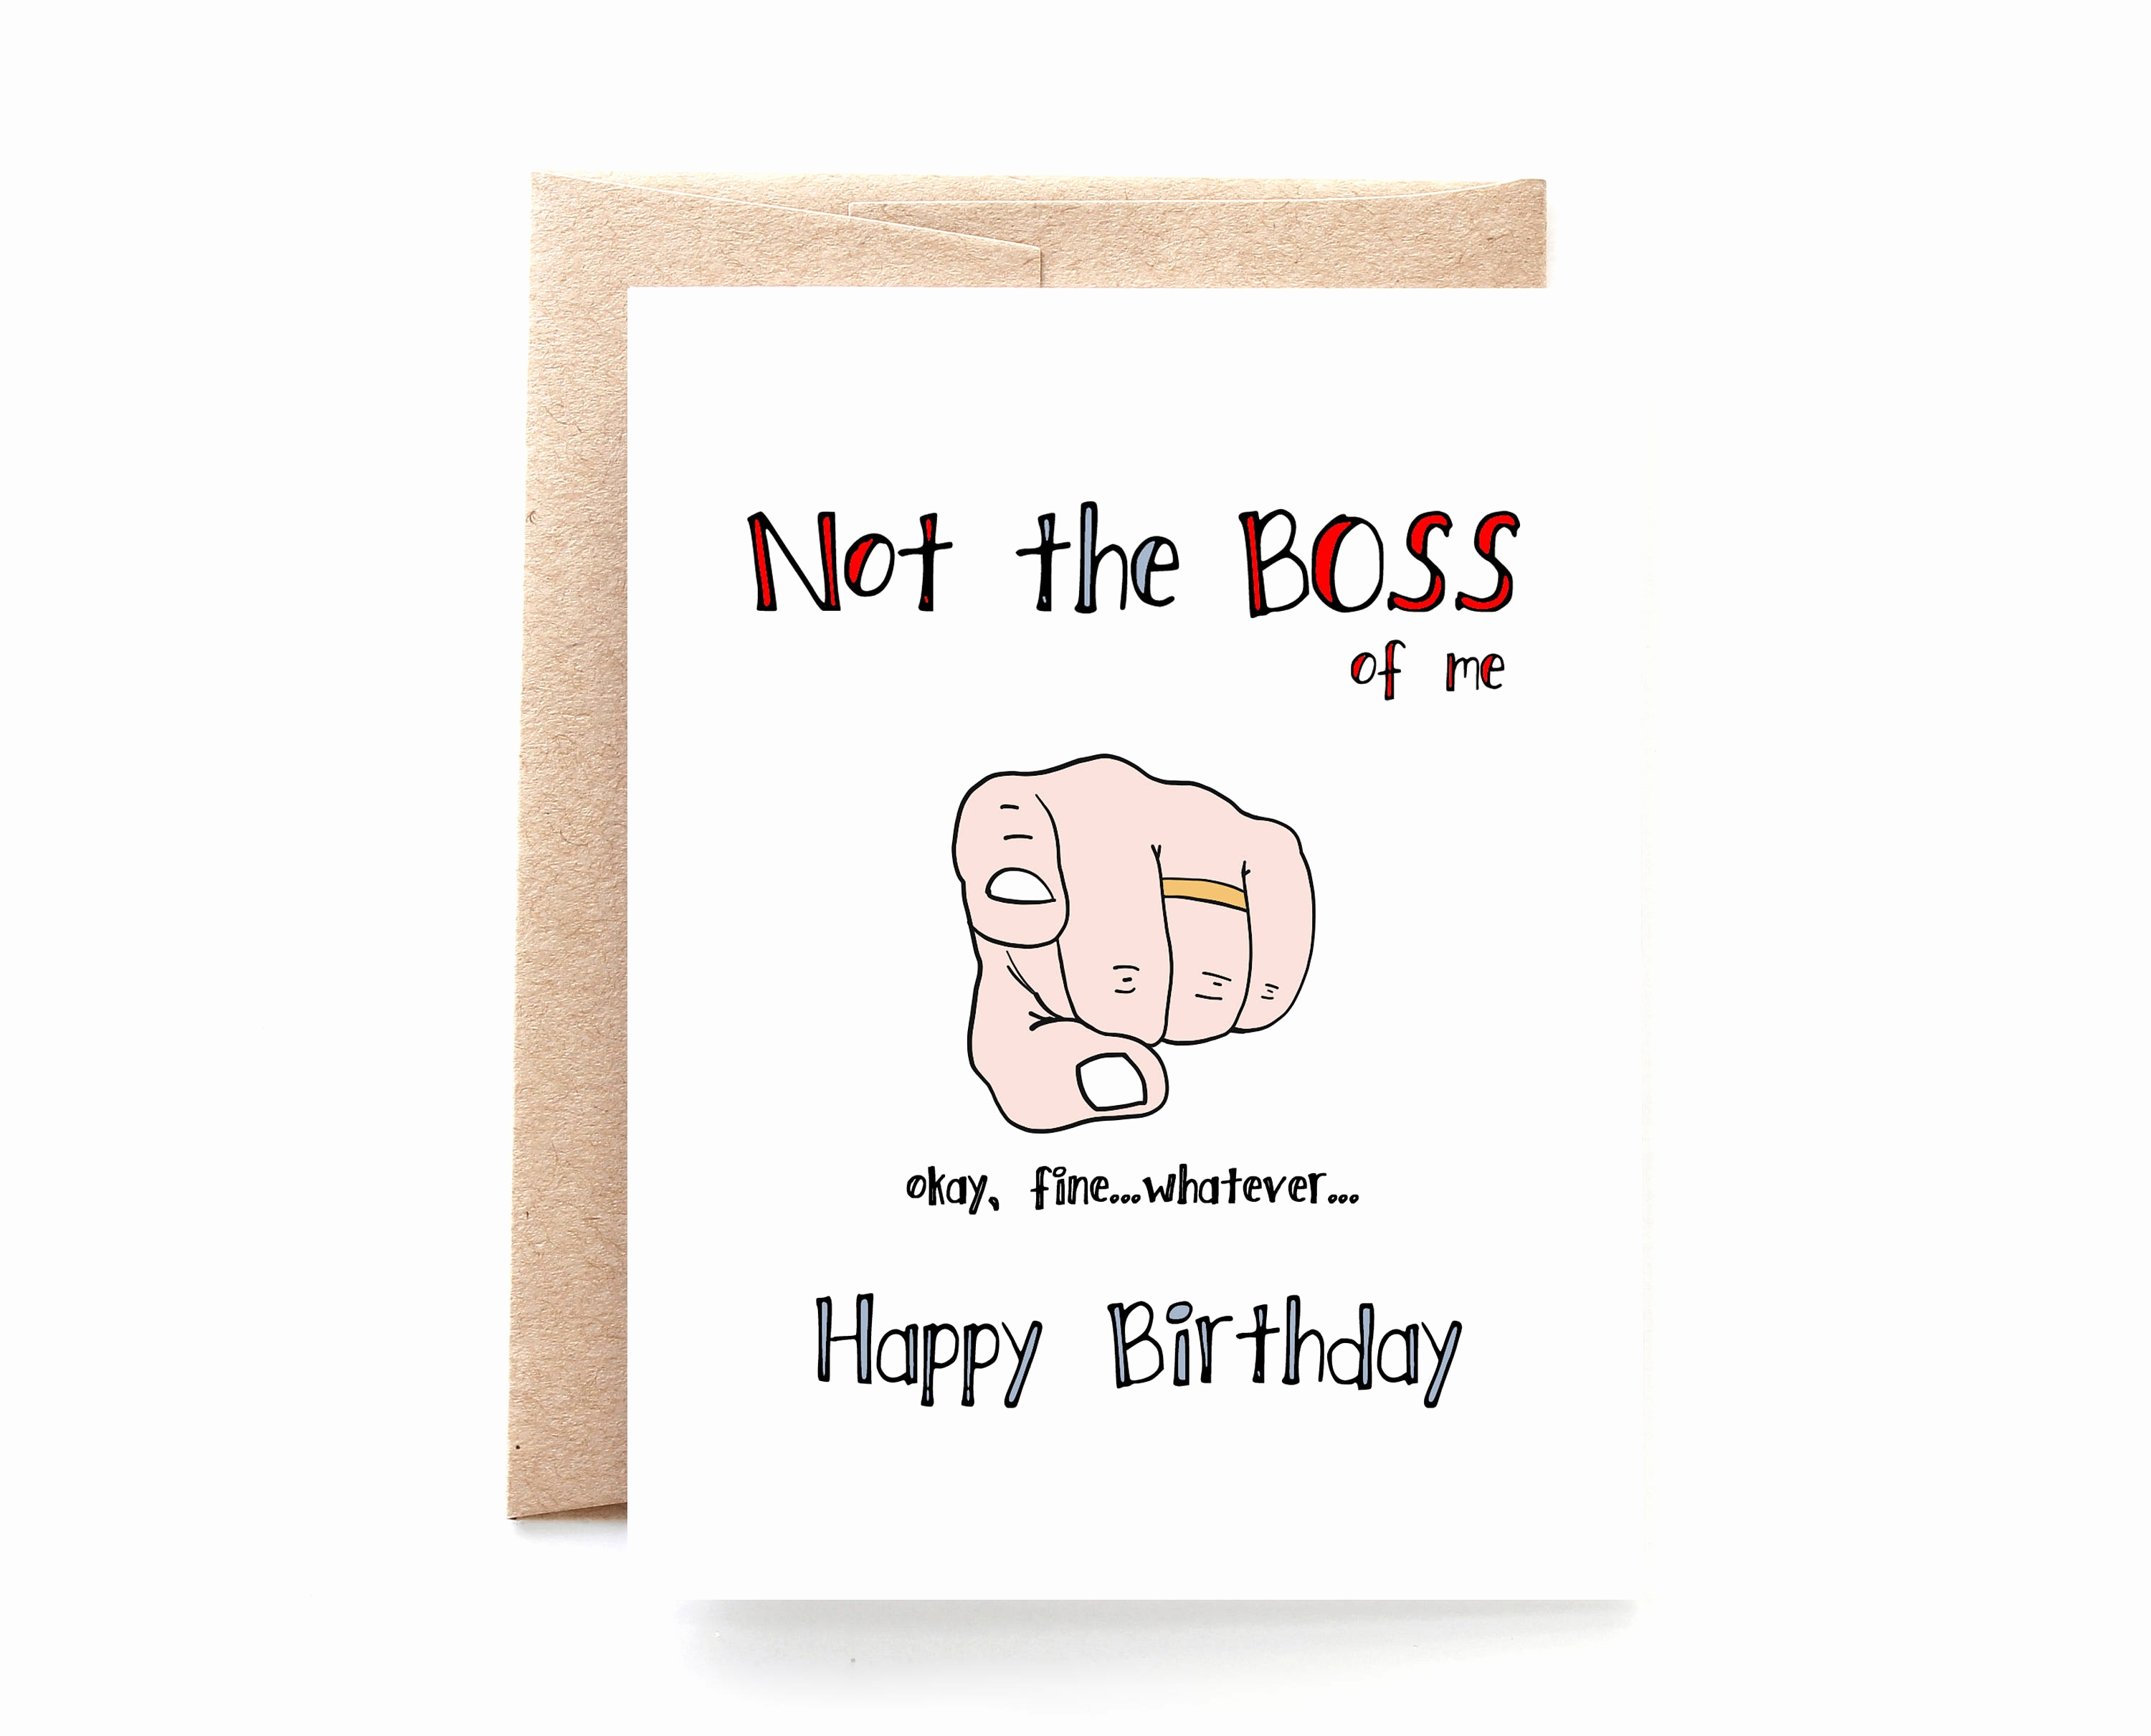 birthday card for boss funny ; birthday-card-for-boss-funny-luxury-birthday-card-wife-birthday-card-not-the-boss-me-of-birthday-card-for-boss-funny